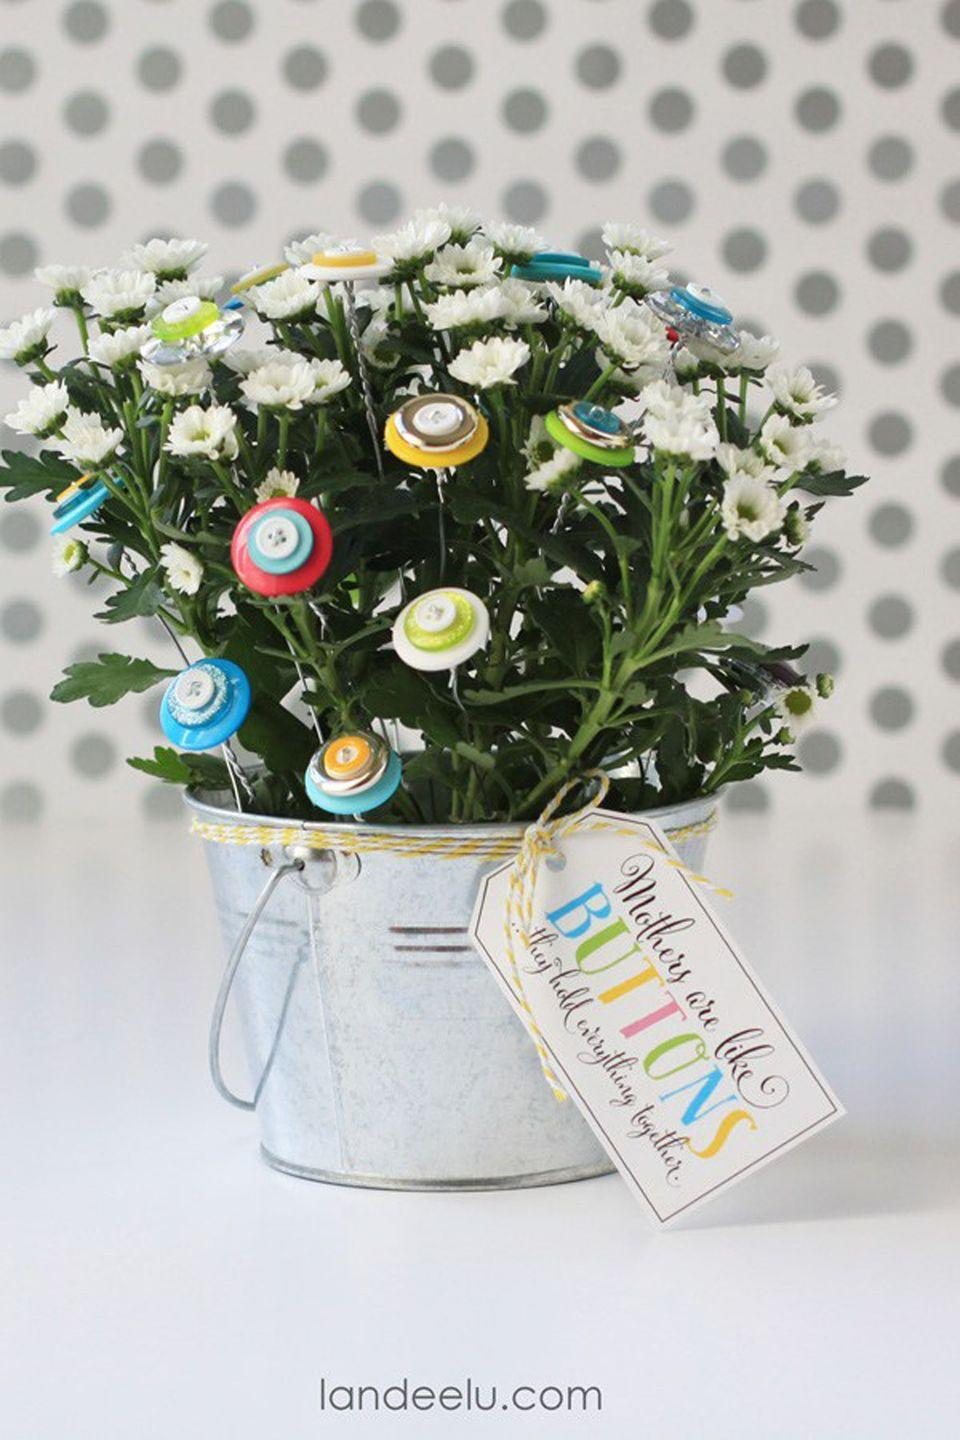 """<p>Buttons are a cute and easy addition to bouquets, especially ones with handpicked flowers.</p><p><strong>Get the tutorial at <a href=""""https://www.landeeseelandeedo.com/flower-craft-button-bouquet"""" rel=""""nofollow noopener"""" target=""""_blank"""" data-ylk=""""slk:Landeelu"""" class=""""link rapid-noclick-resp"""">Landeelu</a>.</strong></p><p><strong>What you'll need: </strong><em>assorted buttons ($6, </em><em><a href=""""https://www.amazon.com/School-Smart-Craft-Buttons-Assorted/dp/B003U6VSFM?tag=syn-yahoo-20&ascsubtag=%5Bartid%7C10050.g.2357%5Bsrc%7Cyahoo-us"""" rel=""""nofollow noopener"""" target=""""_blank"""" data-ylk=""""slk:amazon.com"""" class=""""link rapid-noclick-resp"""">amazon.com</a>); metal planter ($29, <a href=""""https://www.amazon.com/Behrens-1202-2-Quart-Dipped-Steel/dp/B0014CM2JK/ref=sr_1_13"""" rel=""""nofollow noopener"""" target=""""_blank"""" data-ylk=""""slk:amazon.com"""" class=""""link rapid-noclick-resp"""">amazon.com</a>)</em></p>"""